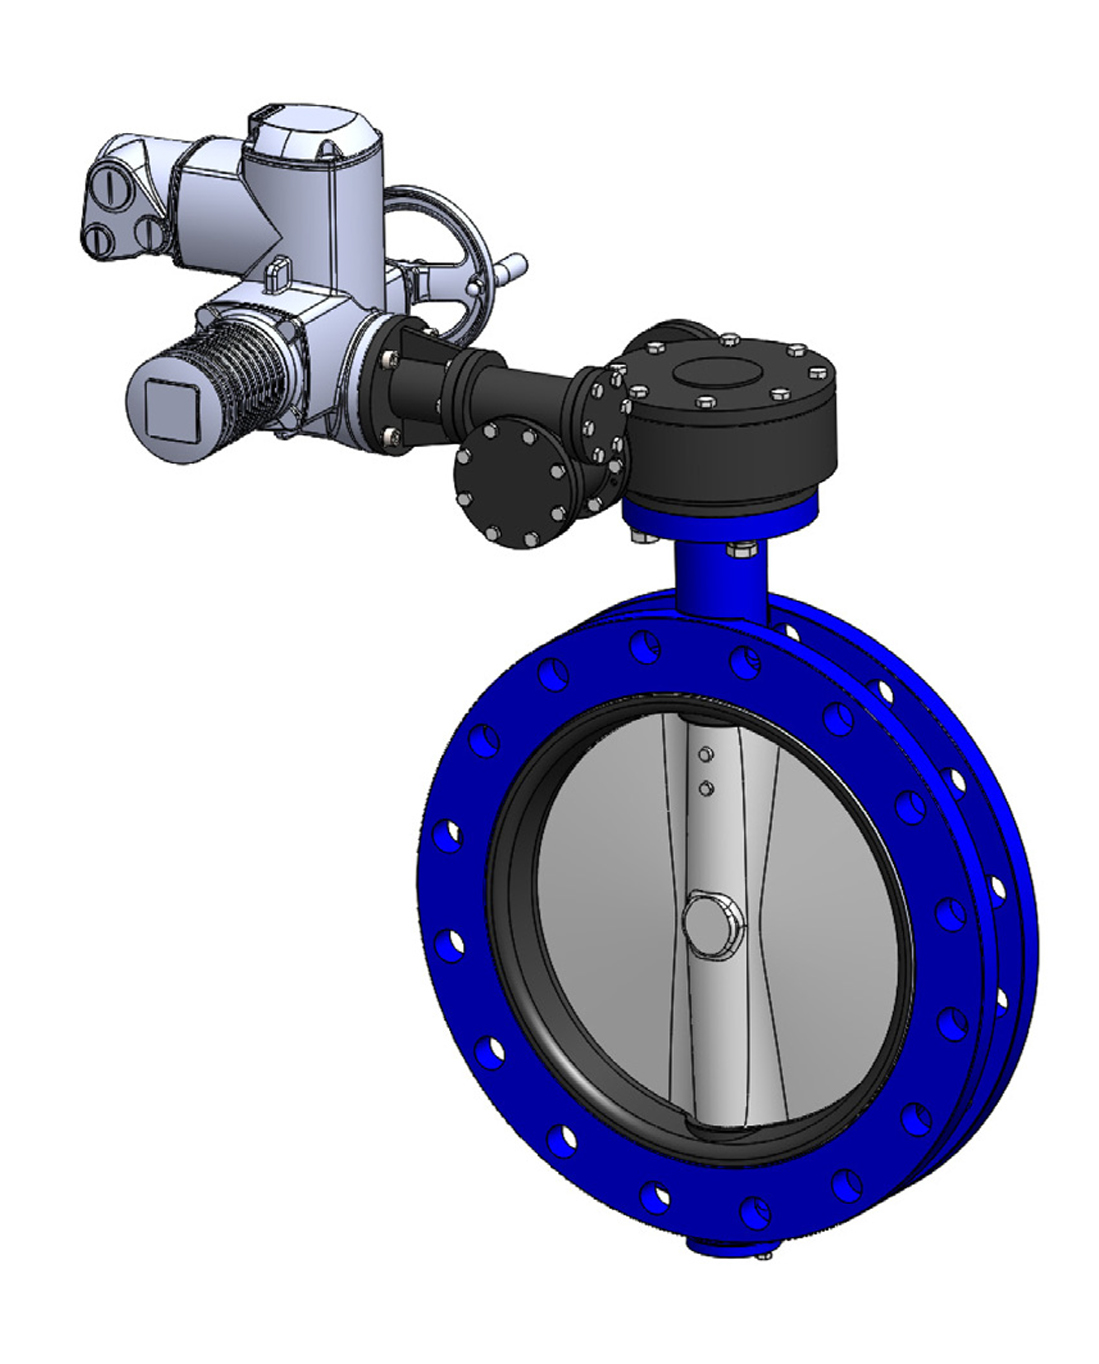 Double flanges type butterfly valve PN16 – ductile iron body – stainless steel disc – AUMA electric operator